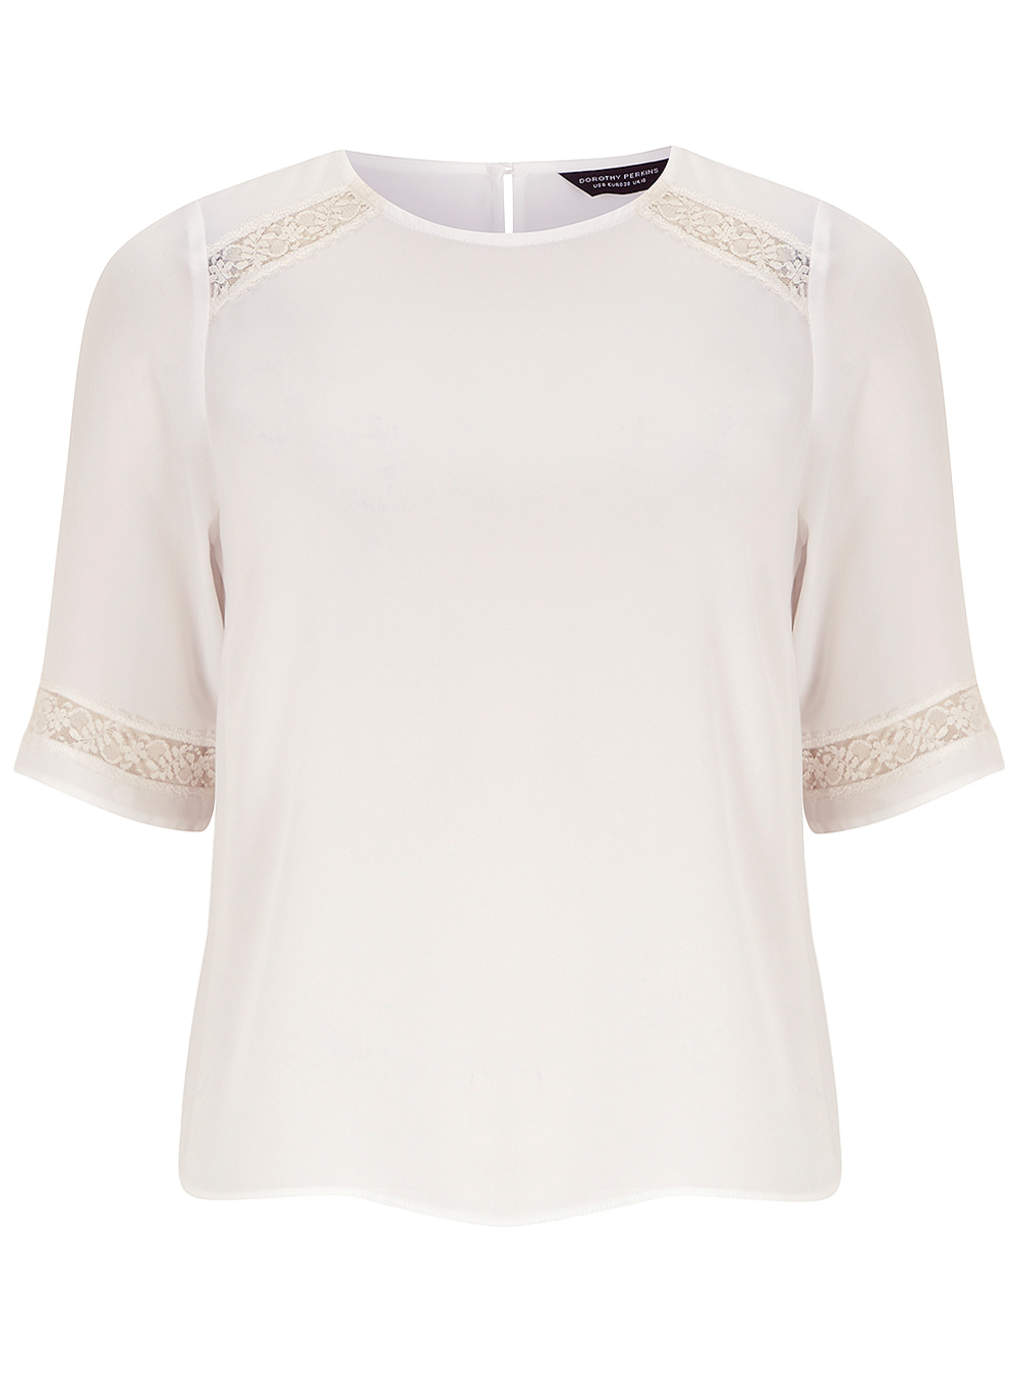 Ivory Lace Insert Tee